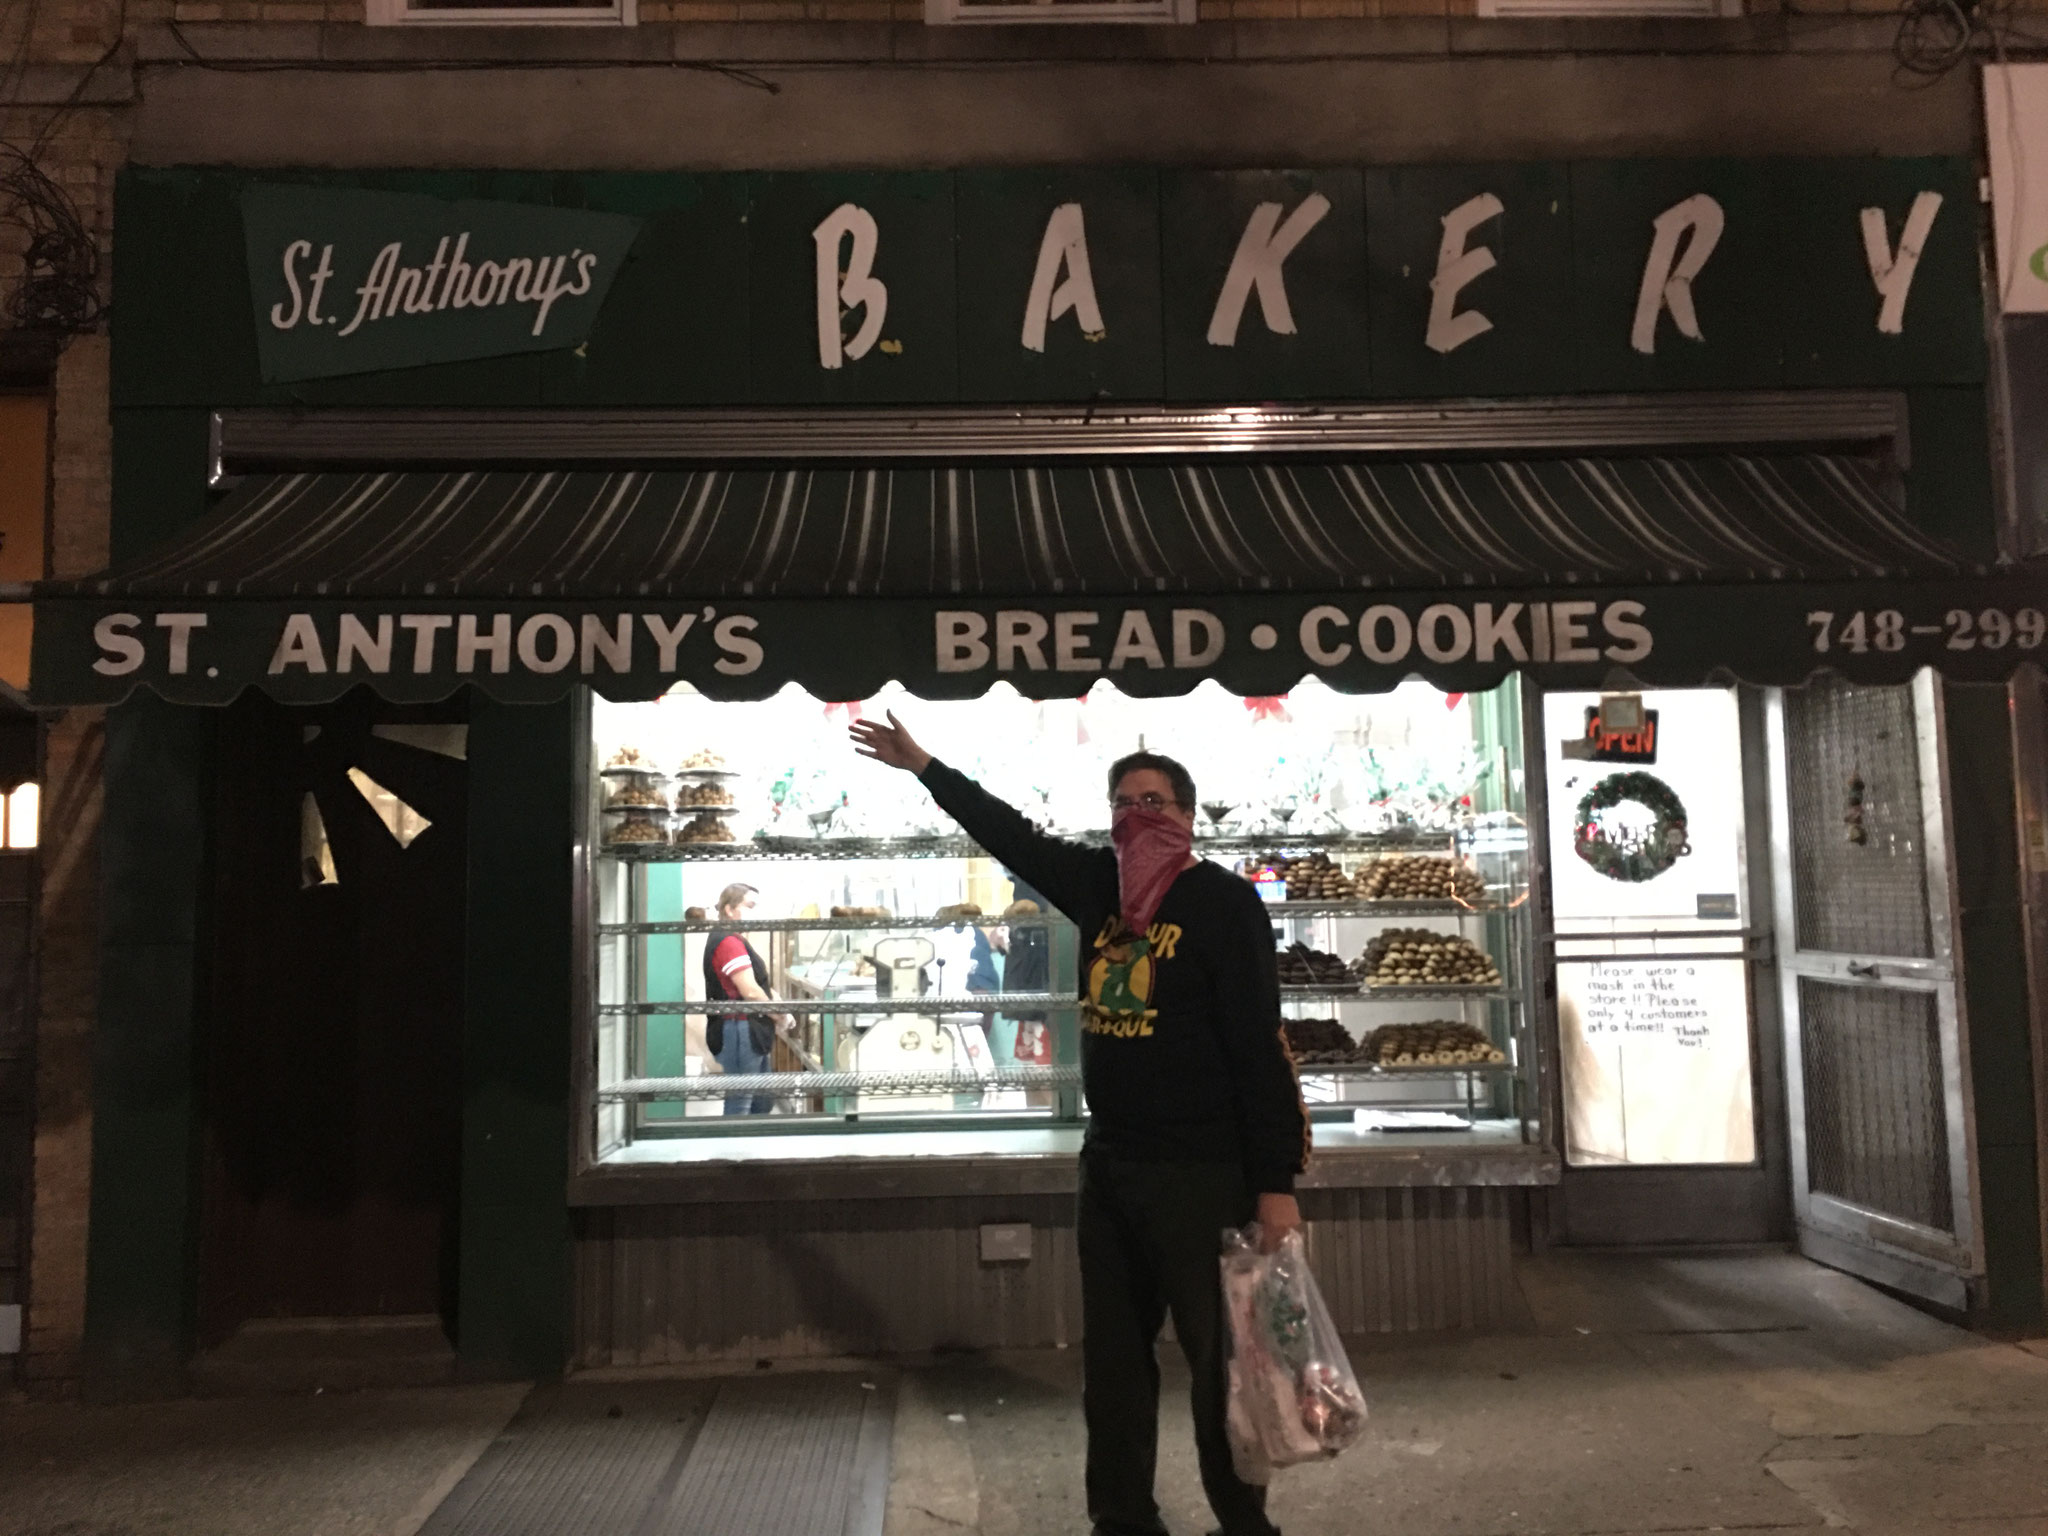 The Bandit 28, in front of St. Anthony's Bakery in Dyker Heights, Brooklyn, NY